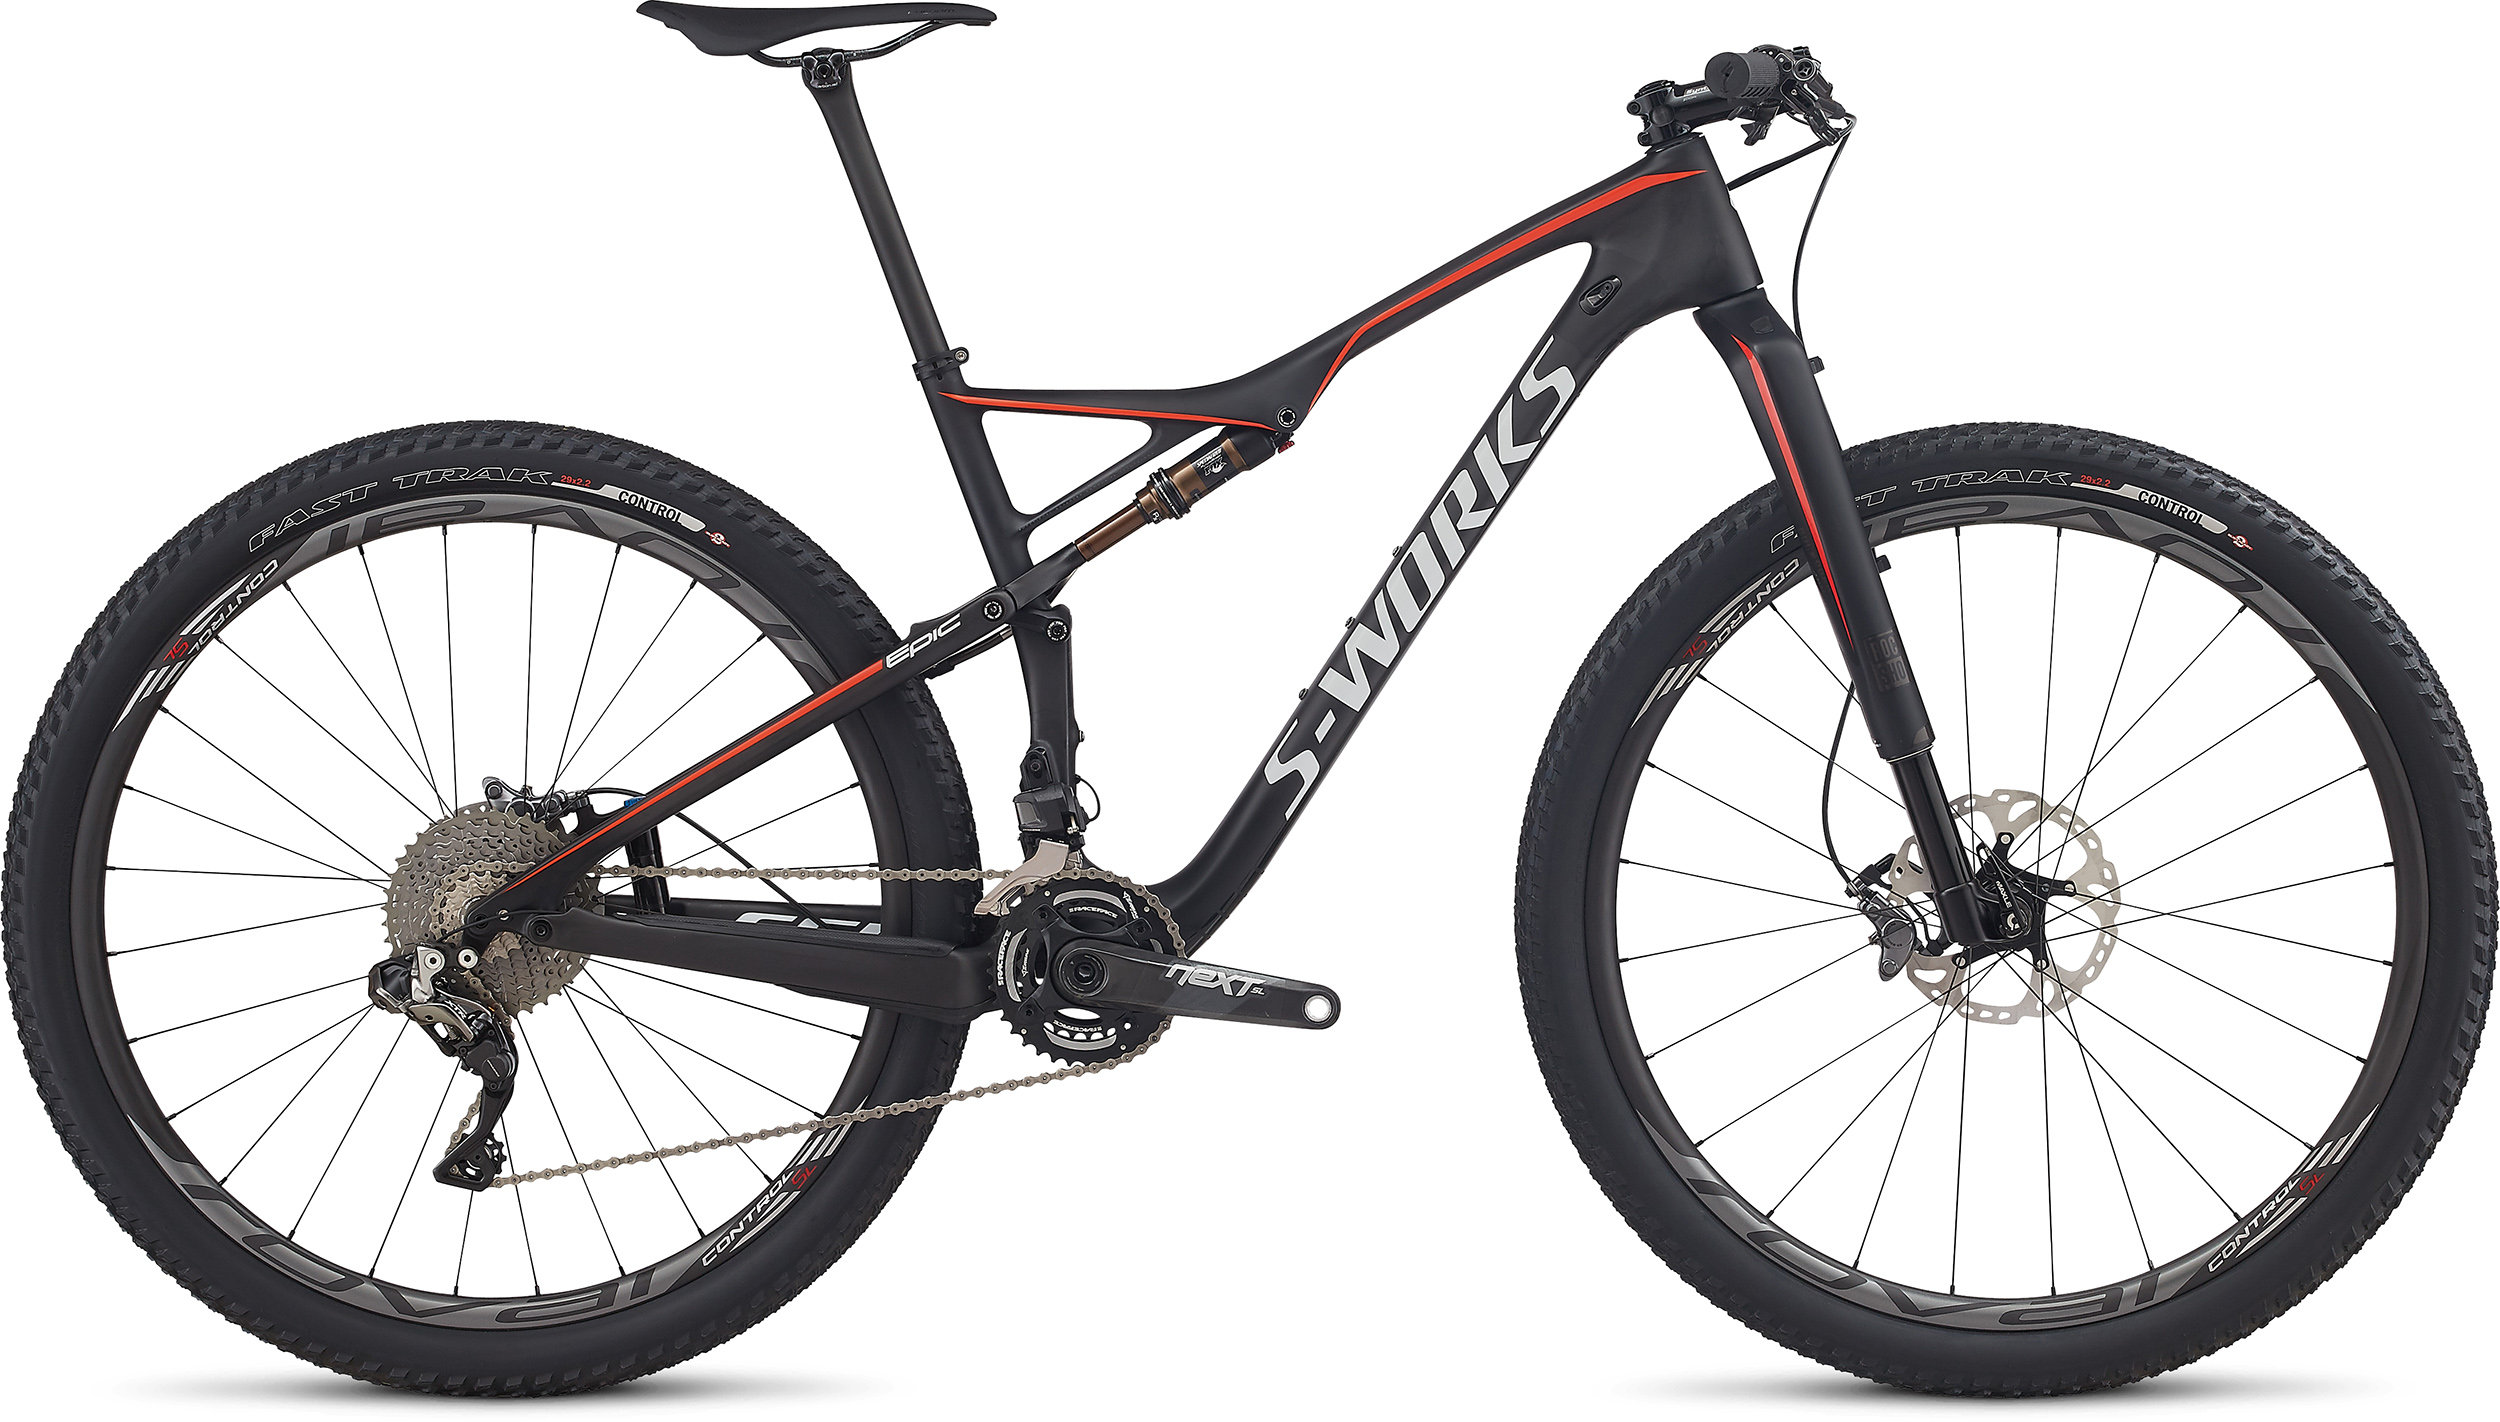 SPECIALIZED SW EPIC FSR CARBON DI2 29 CARB/RKTRED/WHT S - Bike Maniac